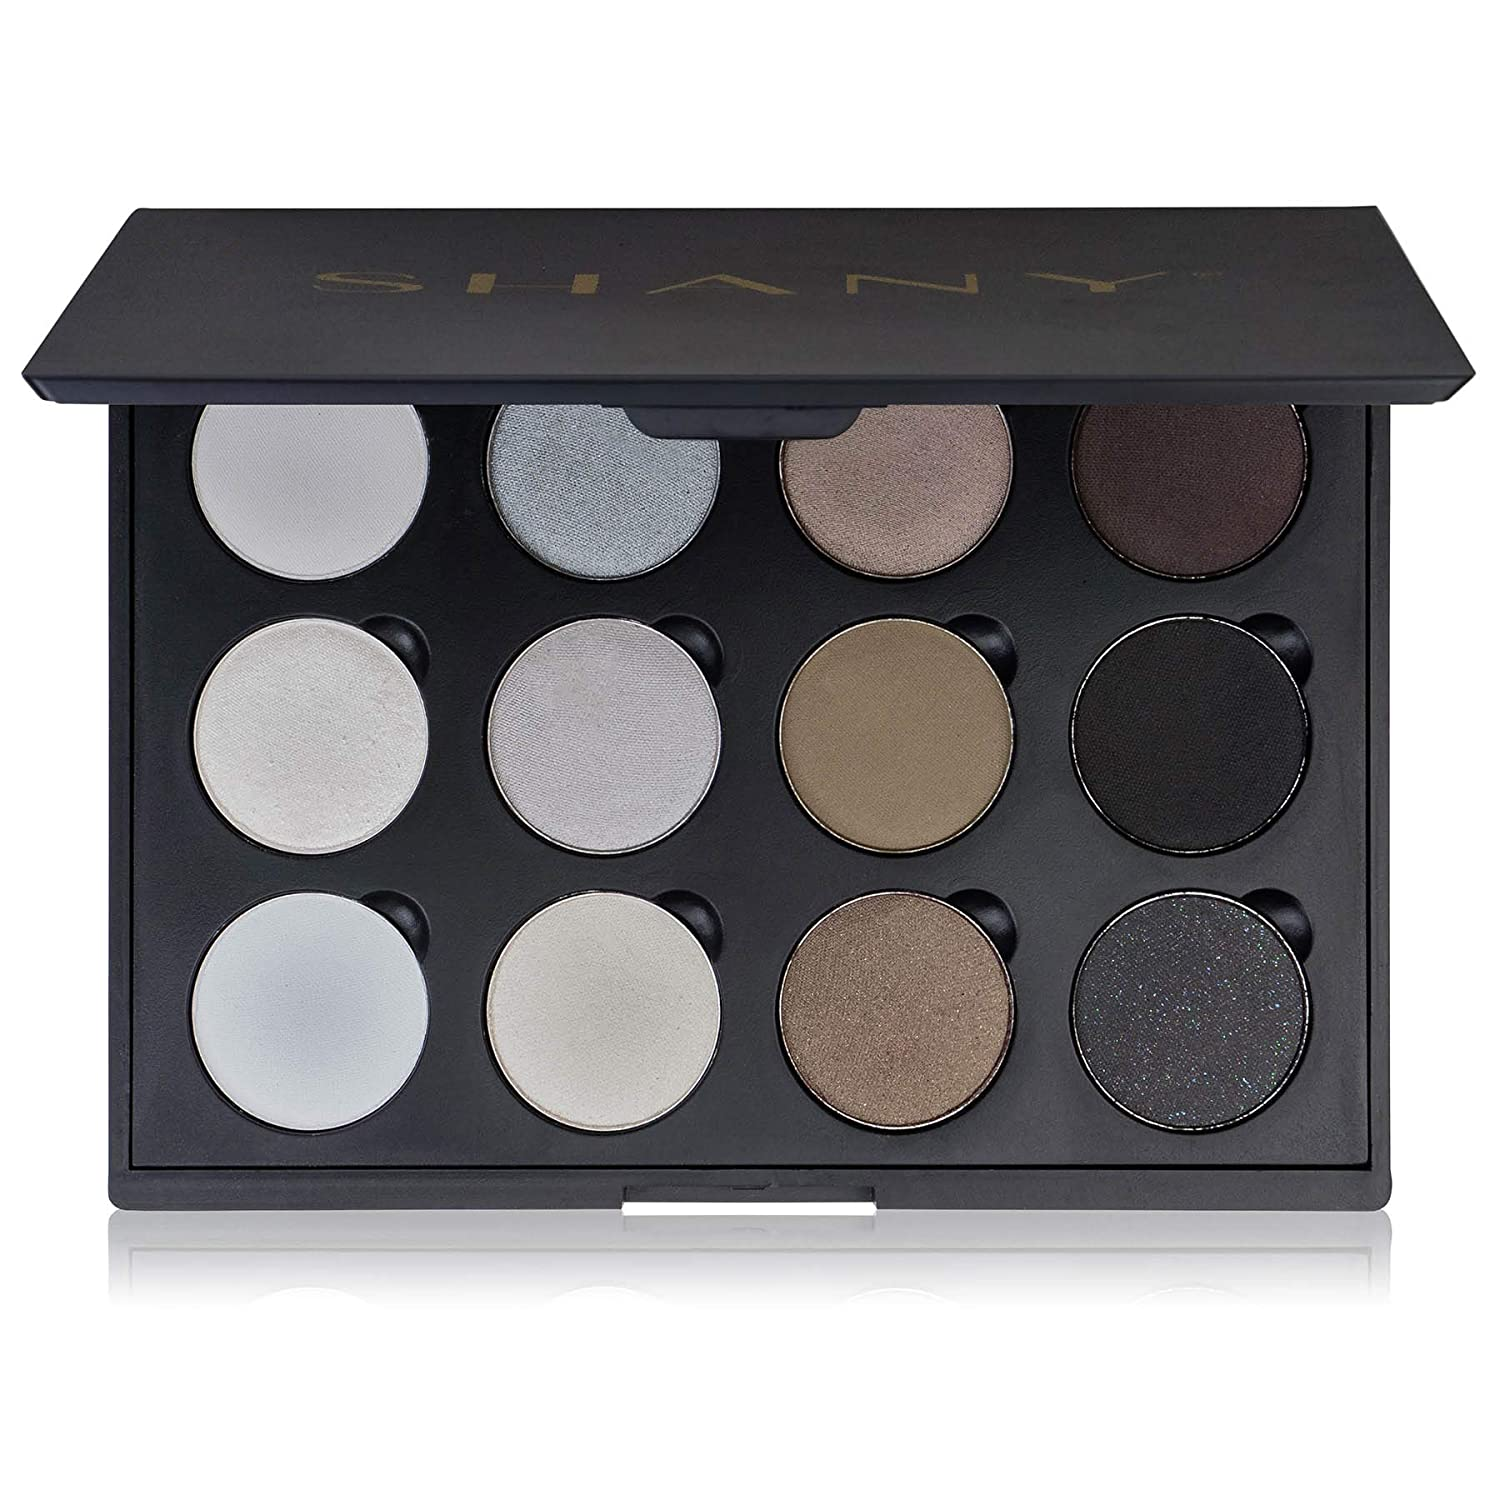 SHANY 12 Color Palette, Smokey Eyes, 6 Ounce